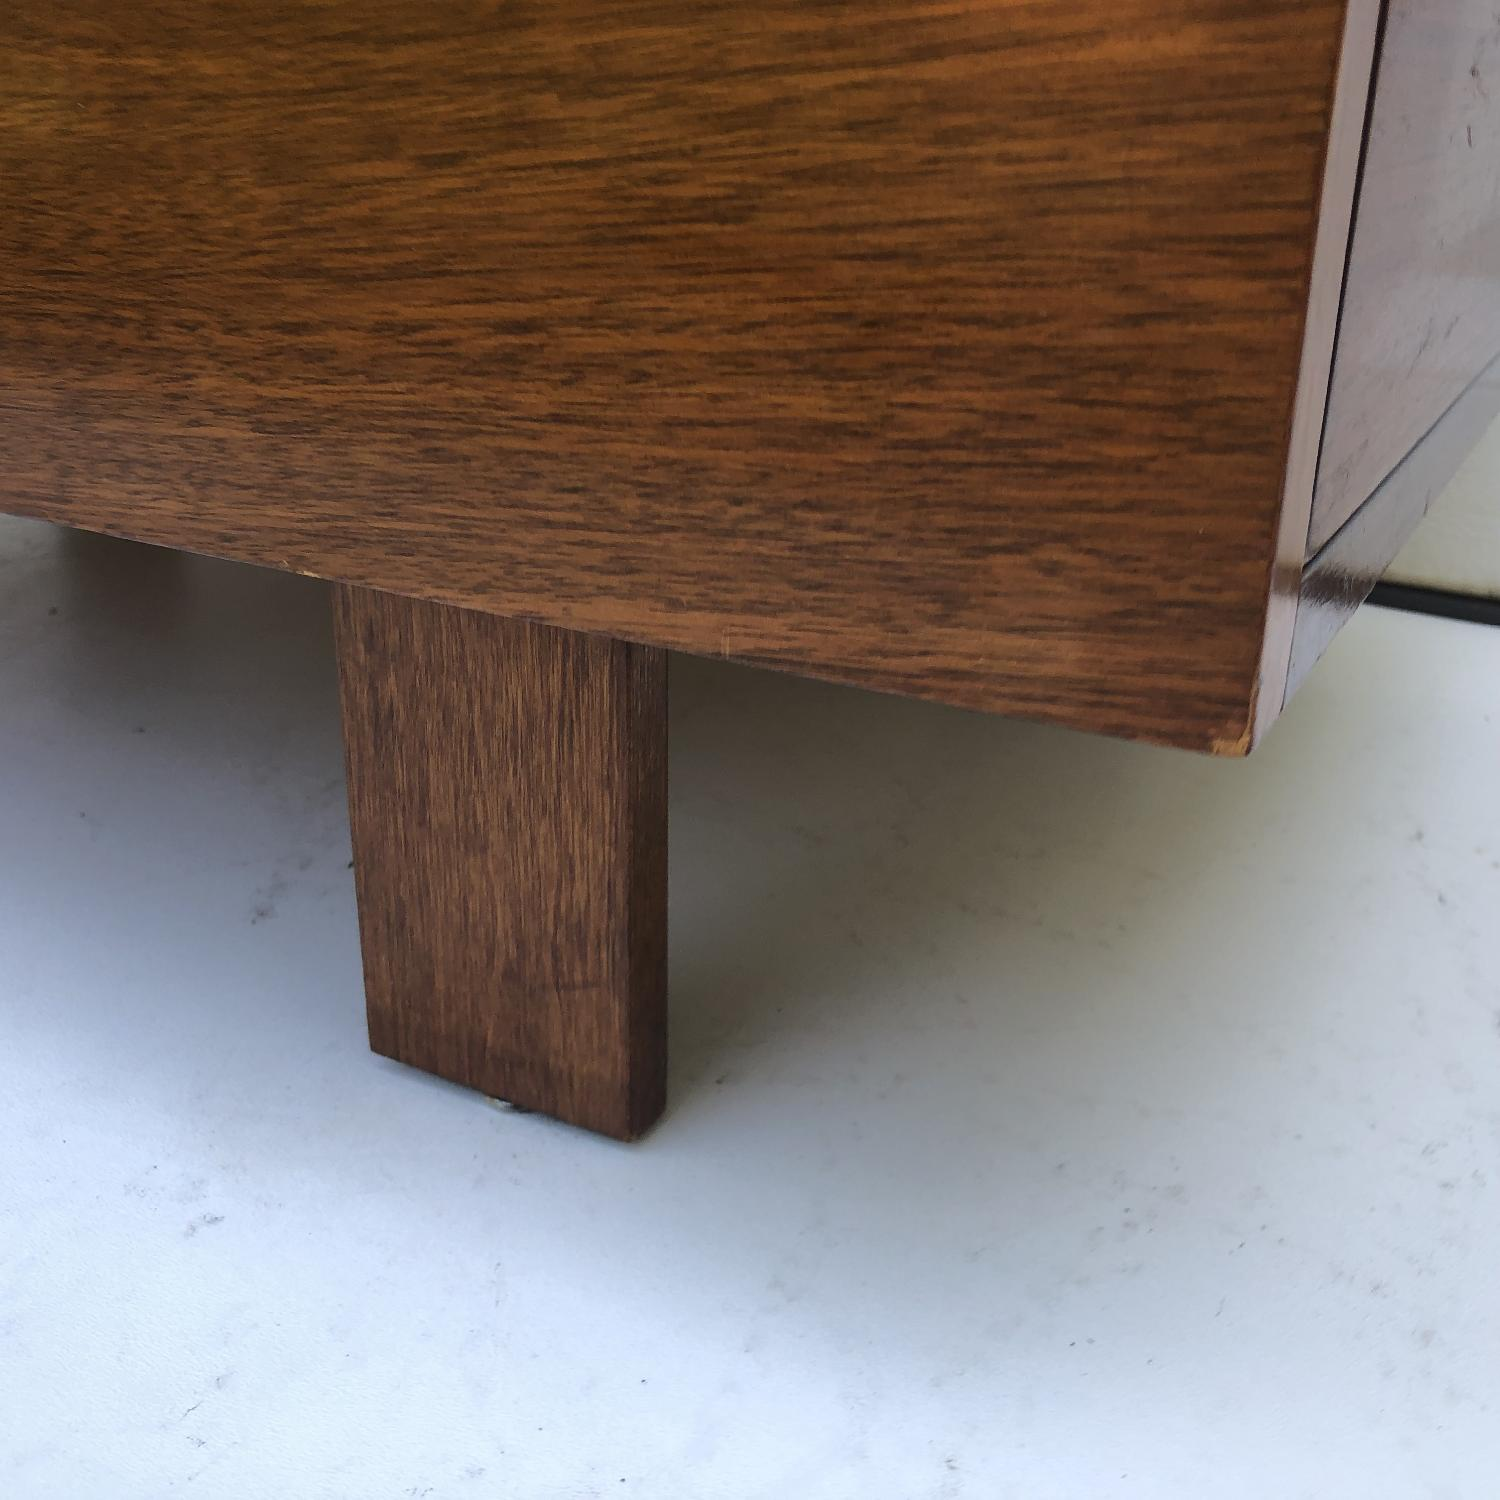 Herman Miller Side Tables by George Nelson - image-16